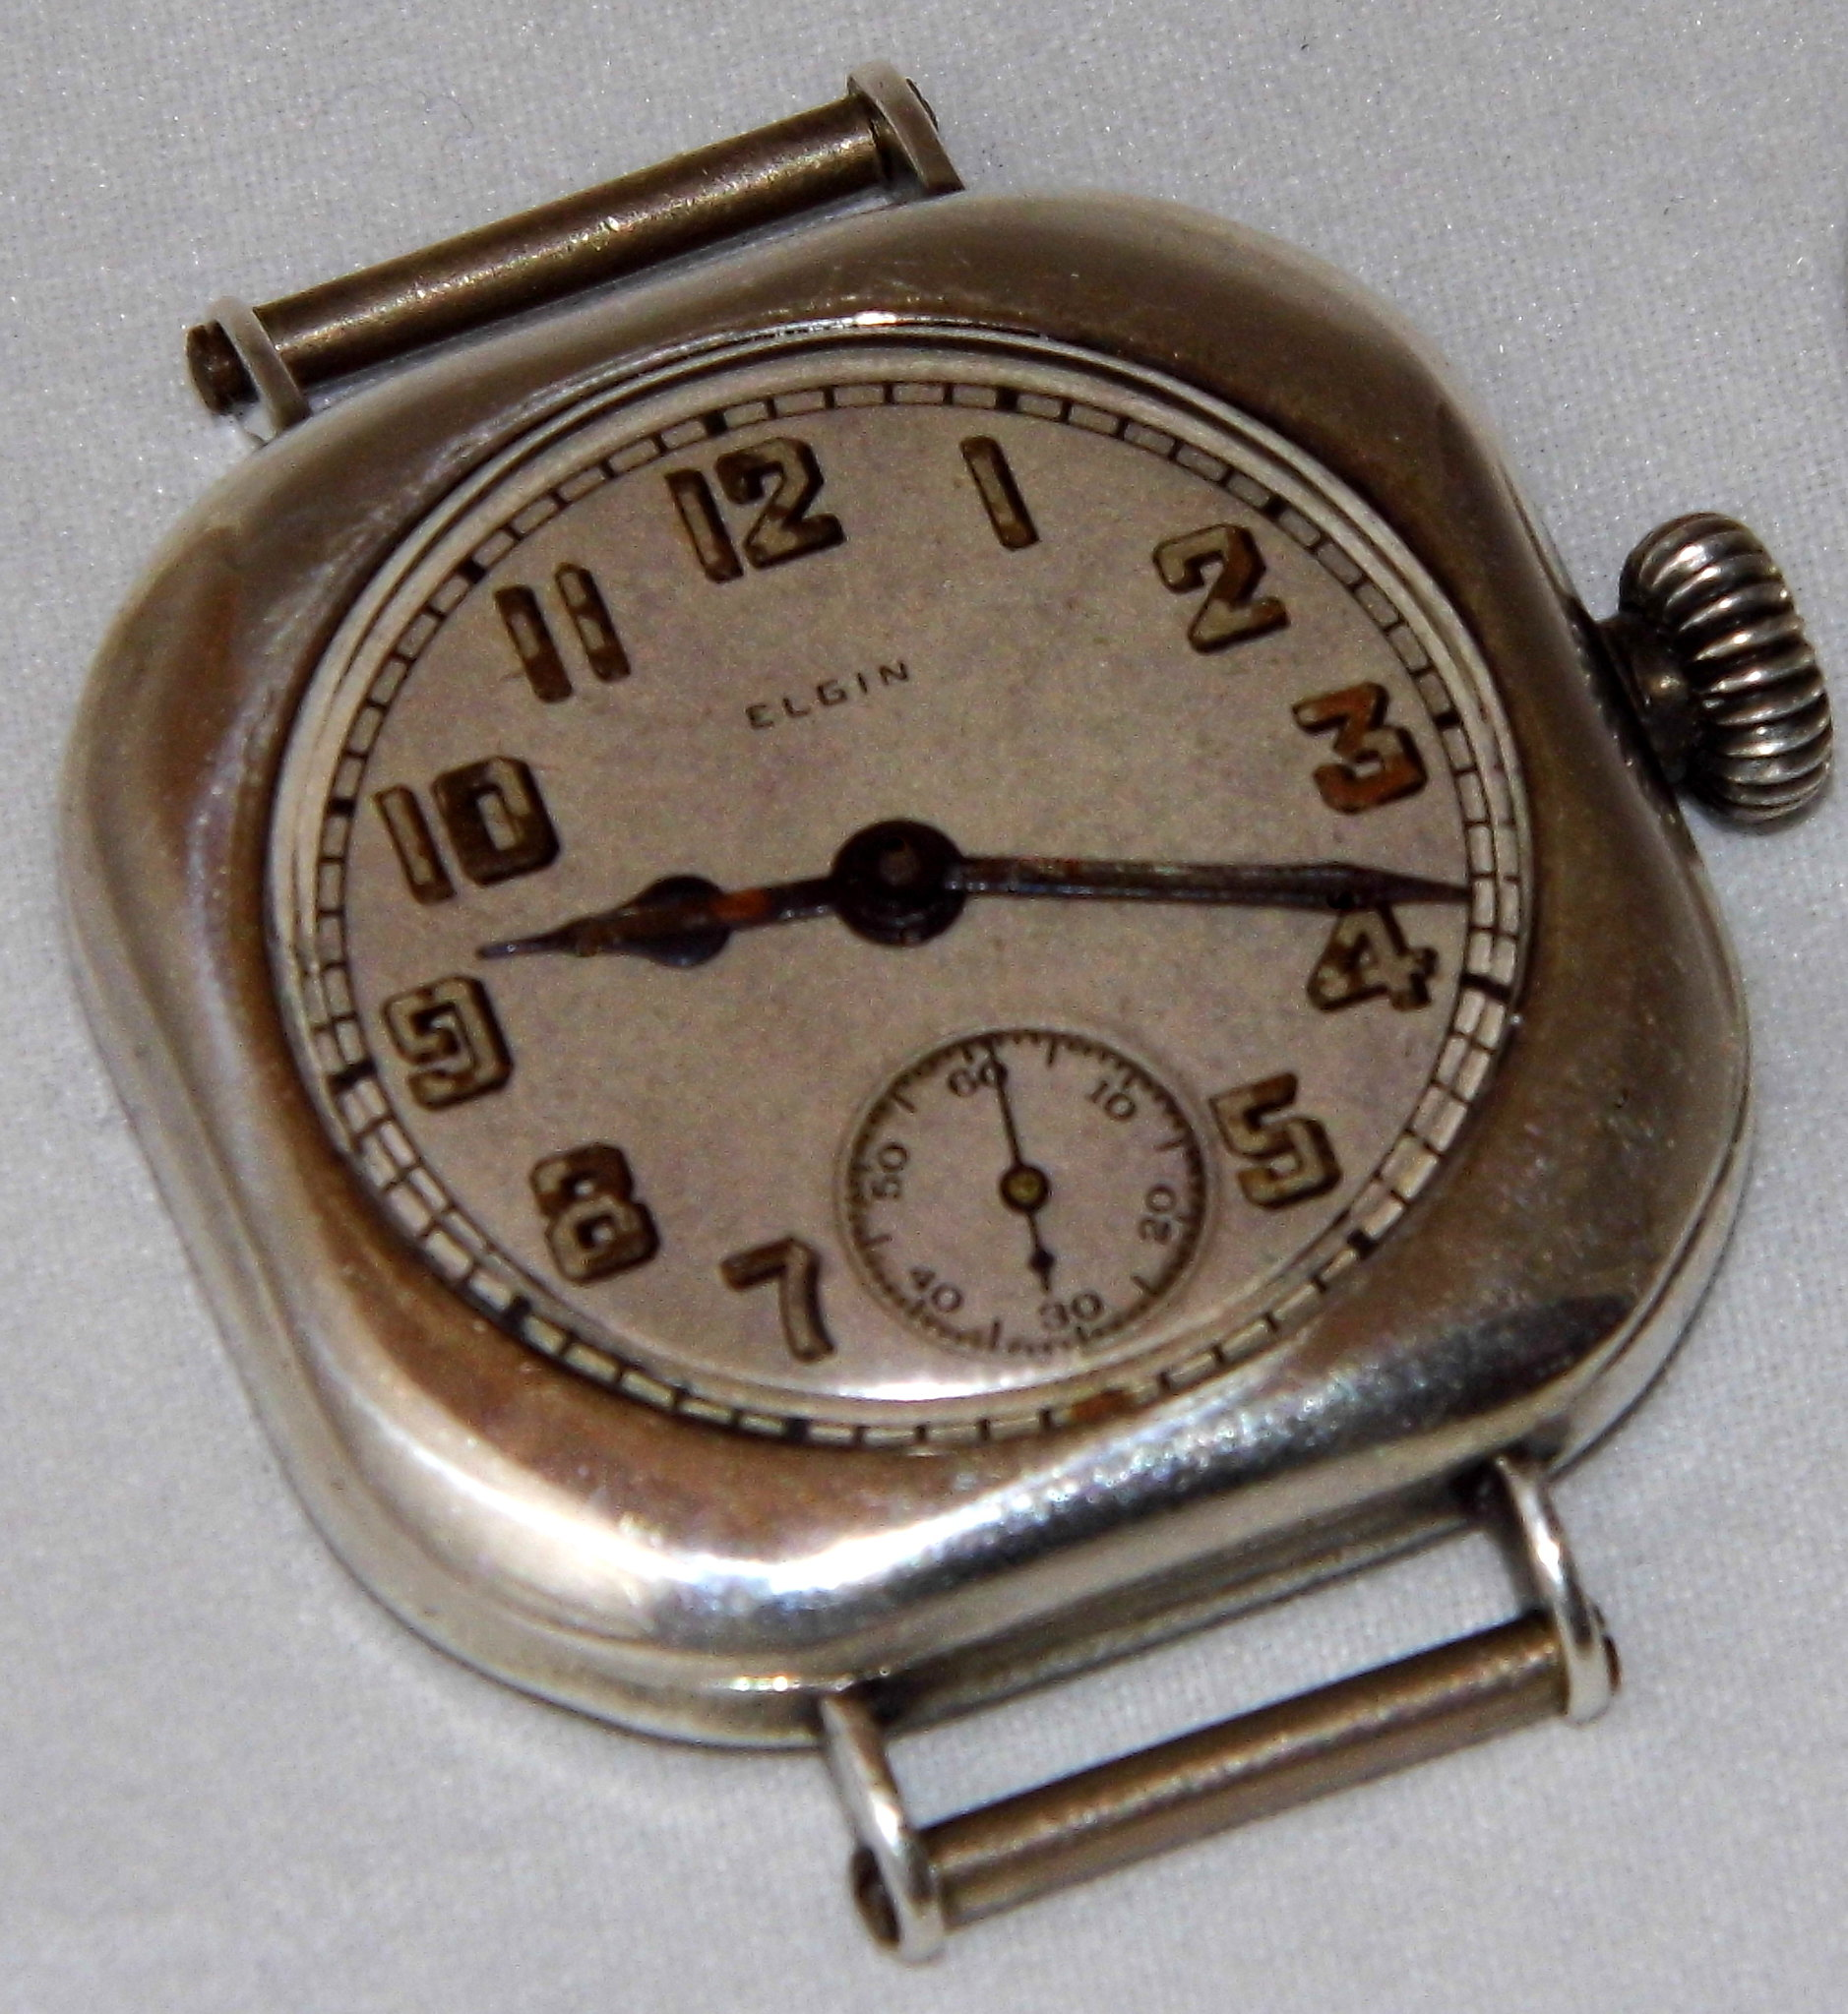 Vintage Elgin Men's Wrist Watch, Sterling Silver Case, 7 Jewels, Made In USA, Circa 1918